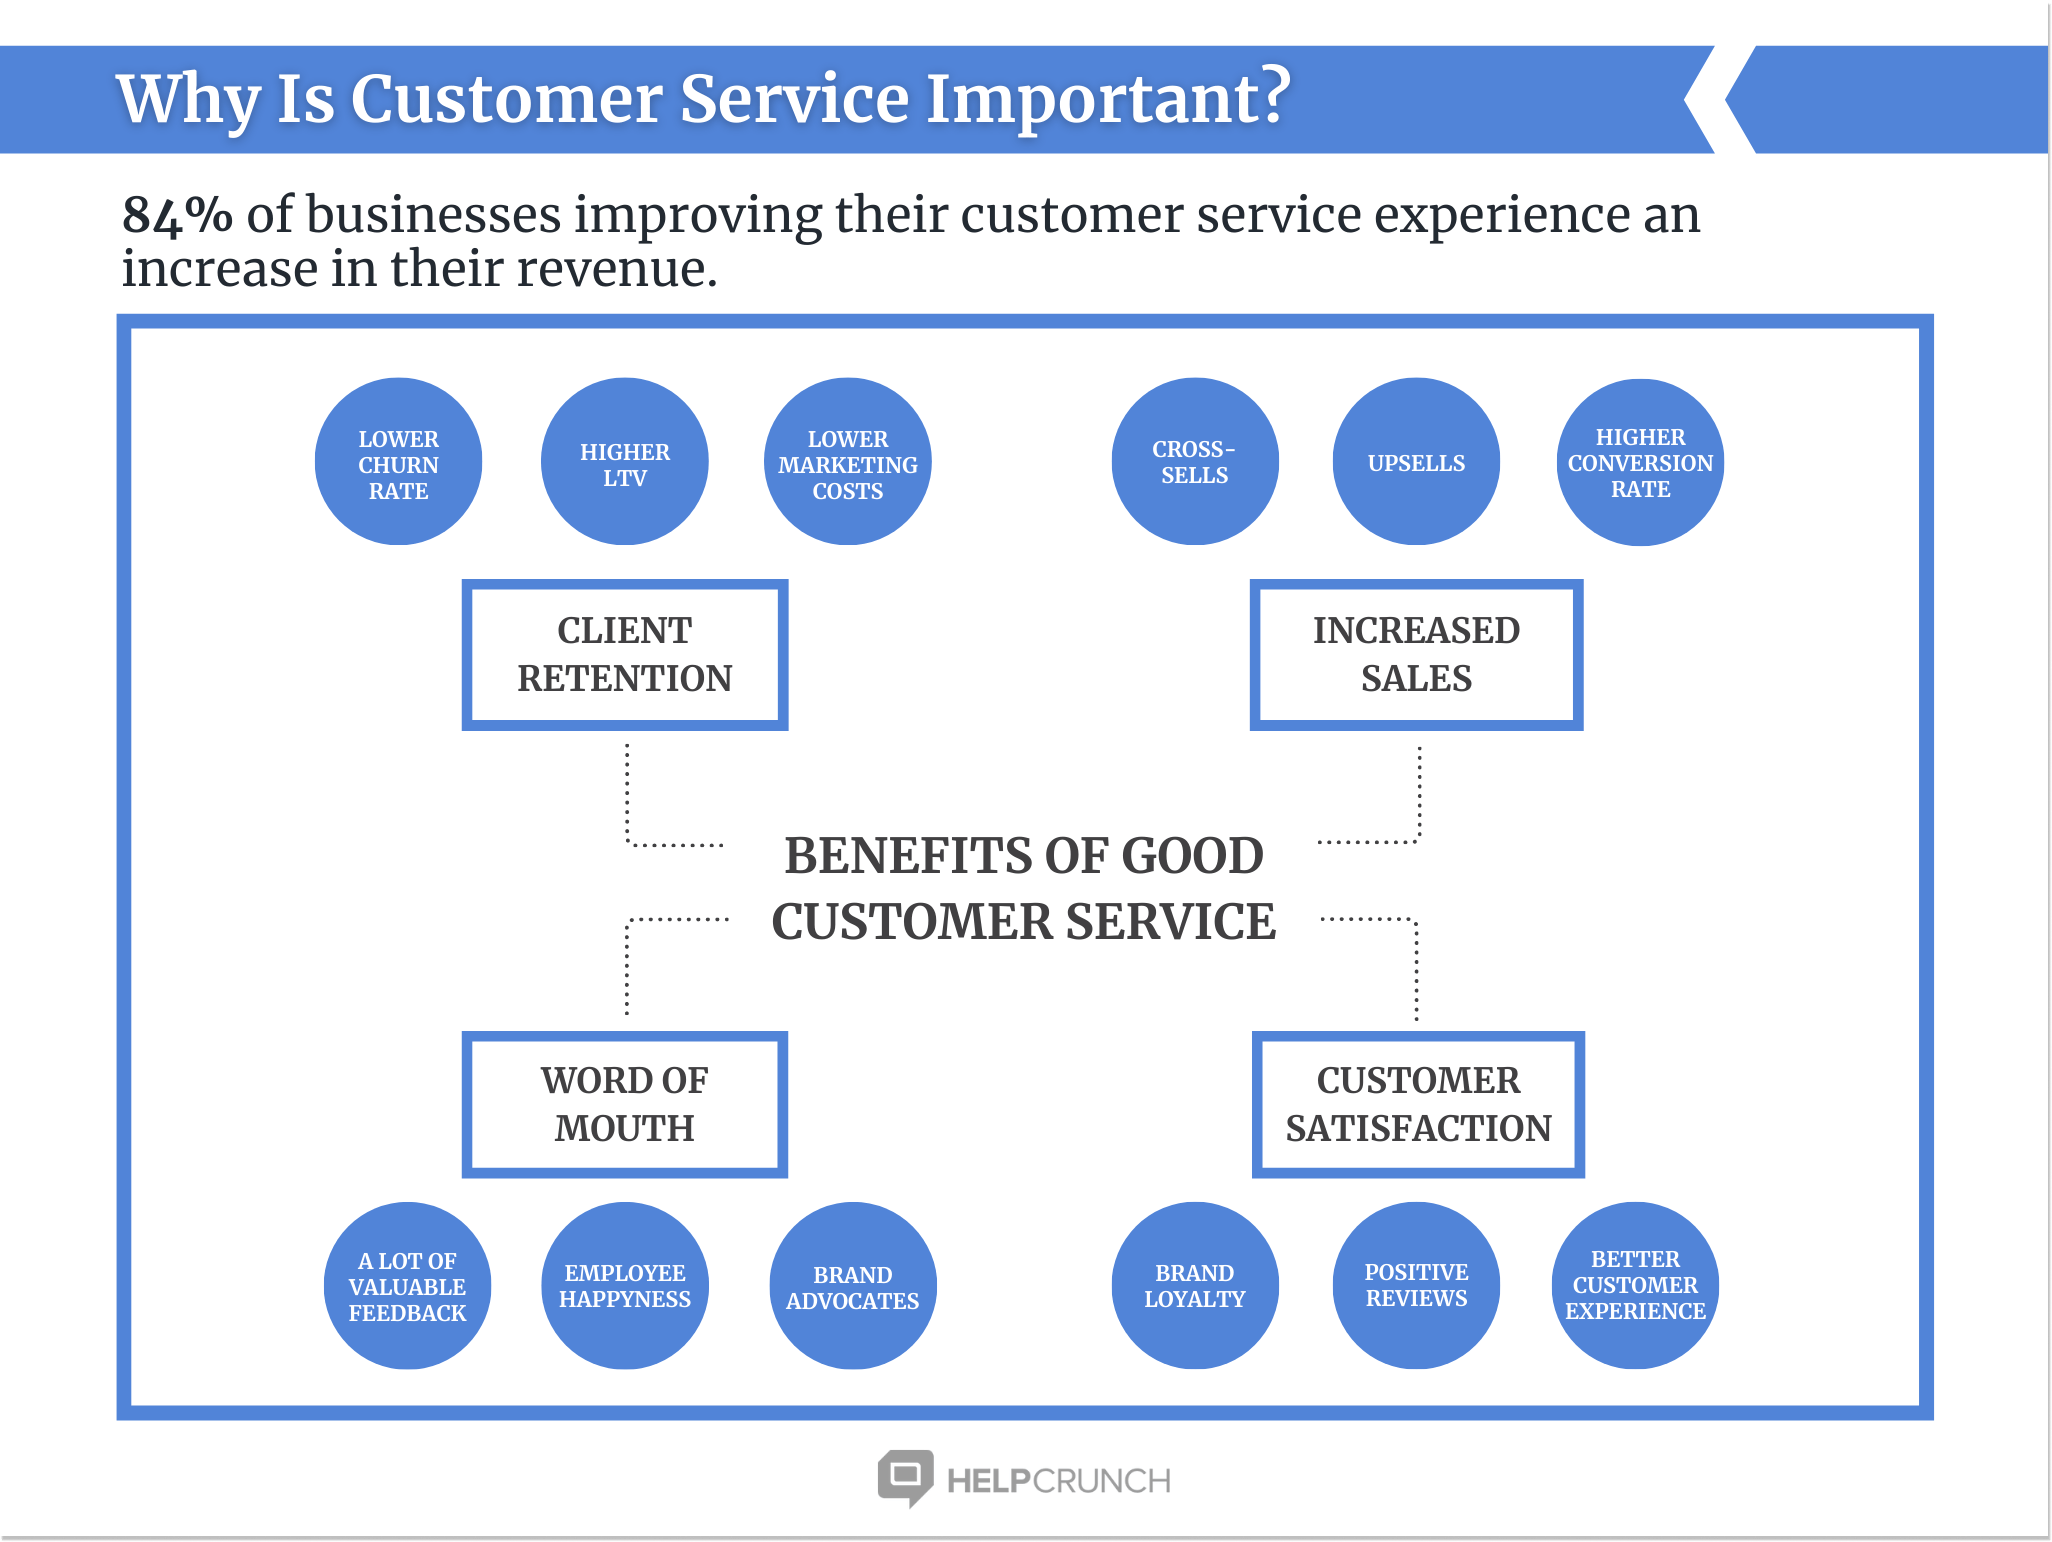 customer service importance by HelpCrunch